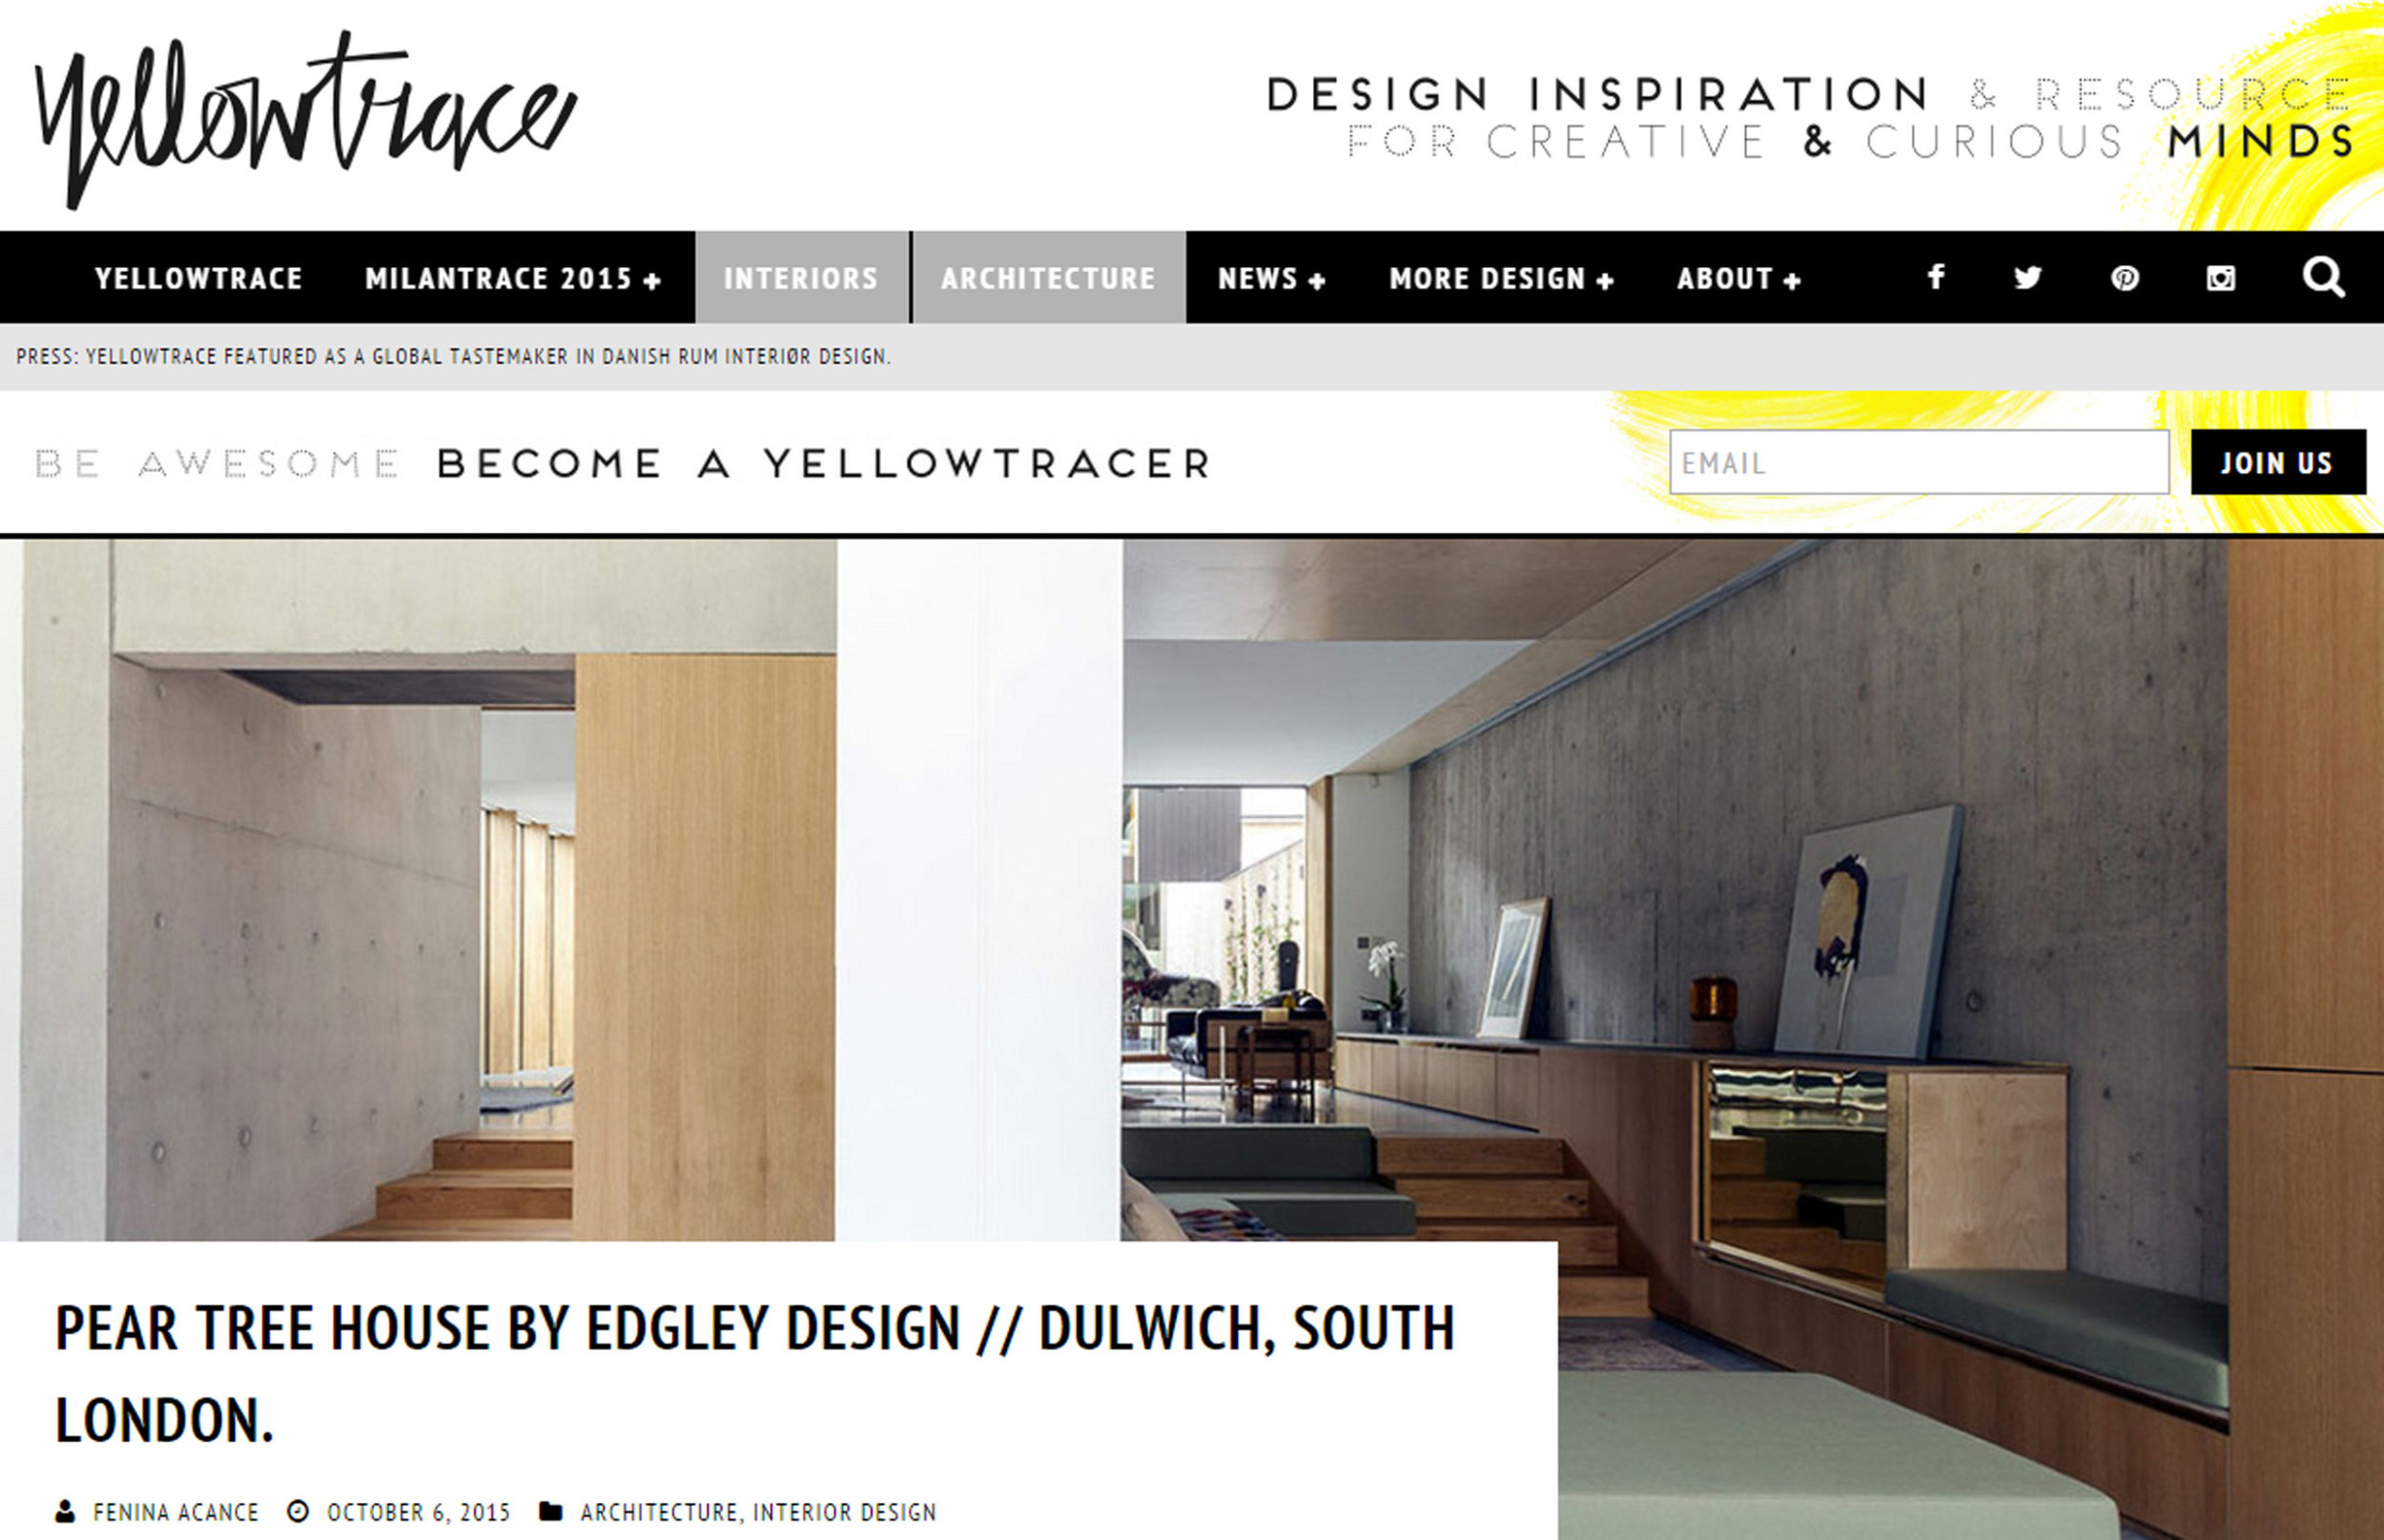 Yellowtrace_Pear-Tree-House-Article.jpg